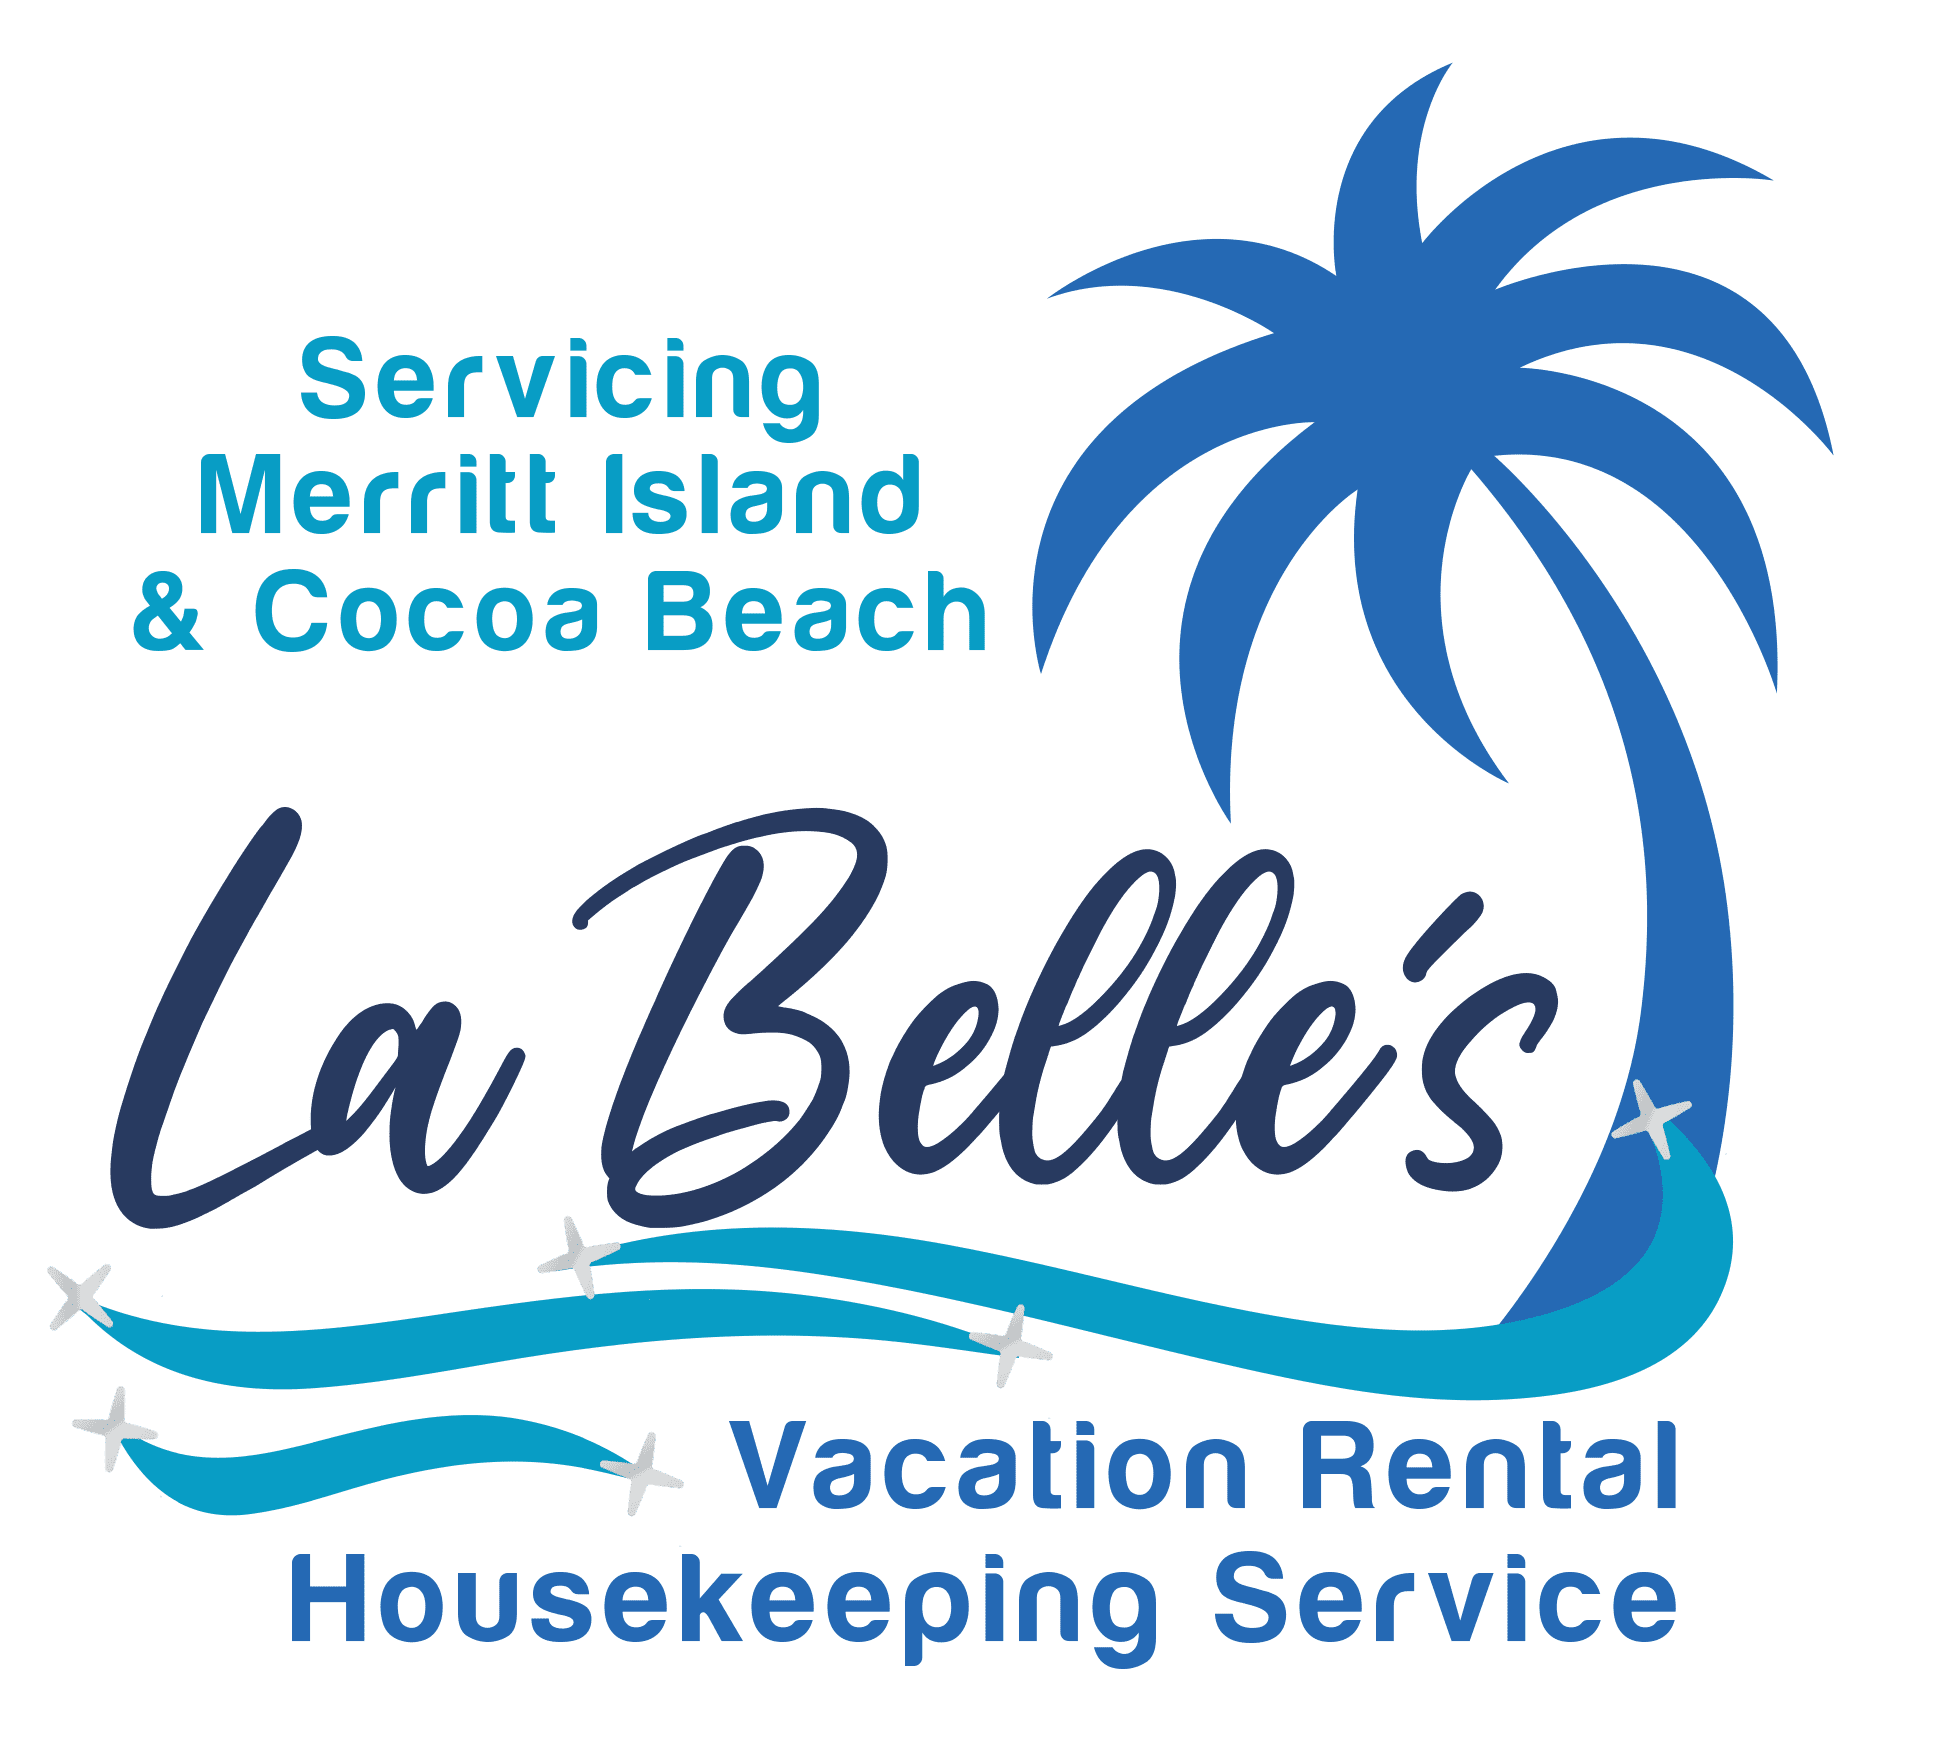 Labelle's Vacation Rental Housekeeping Service